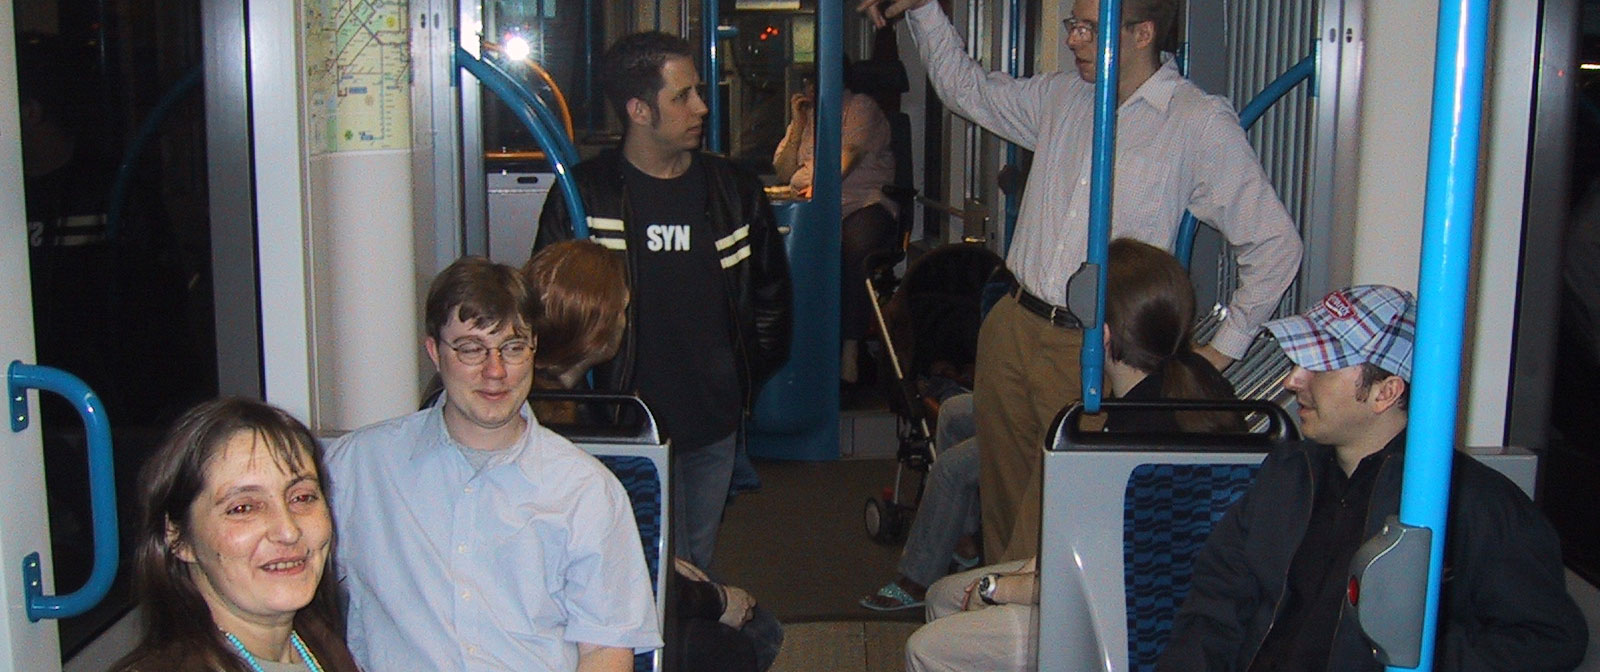 A photograph of PHP developers on a tram in Amsterdam